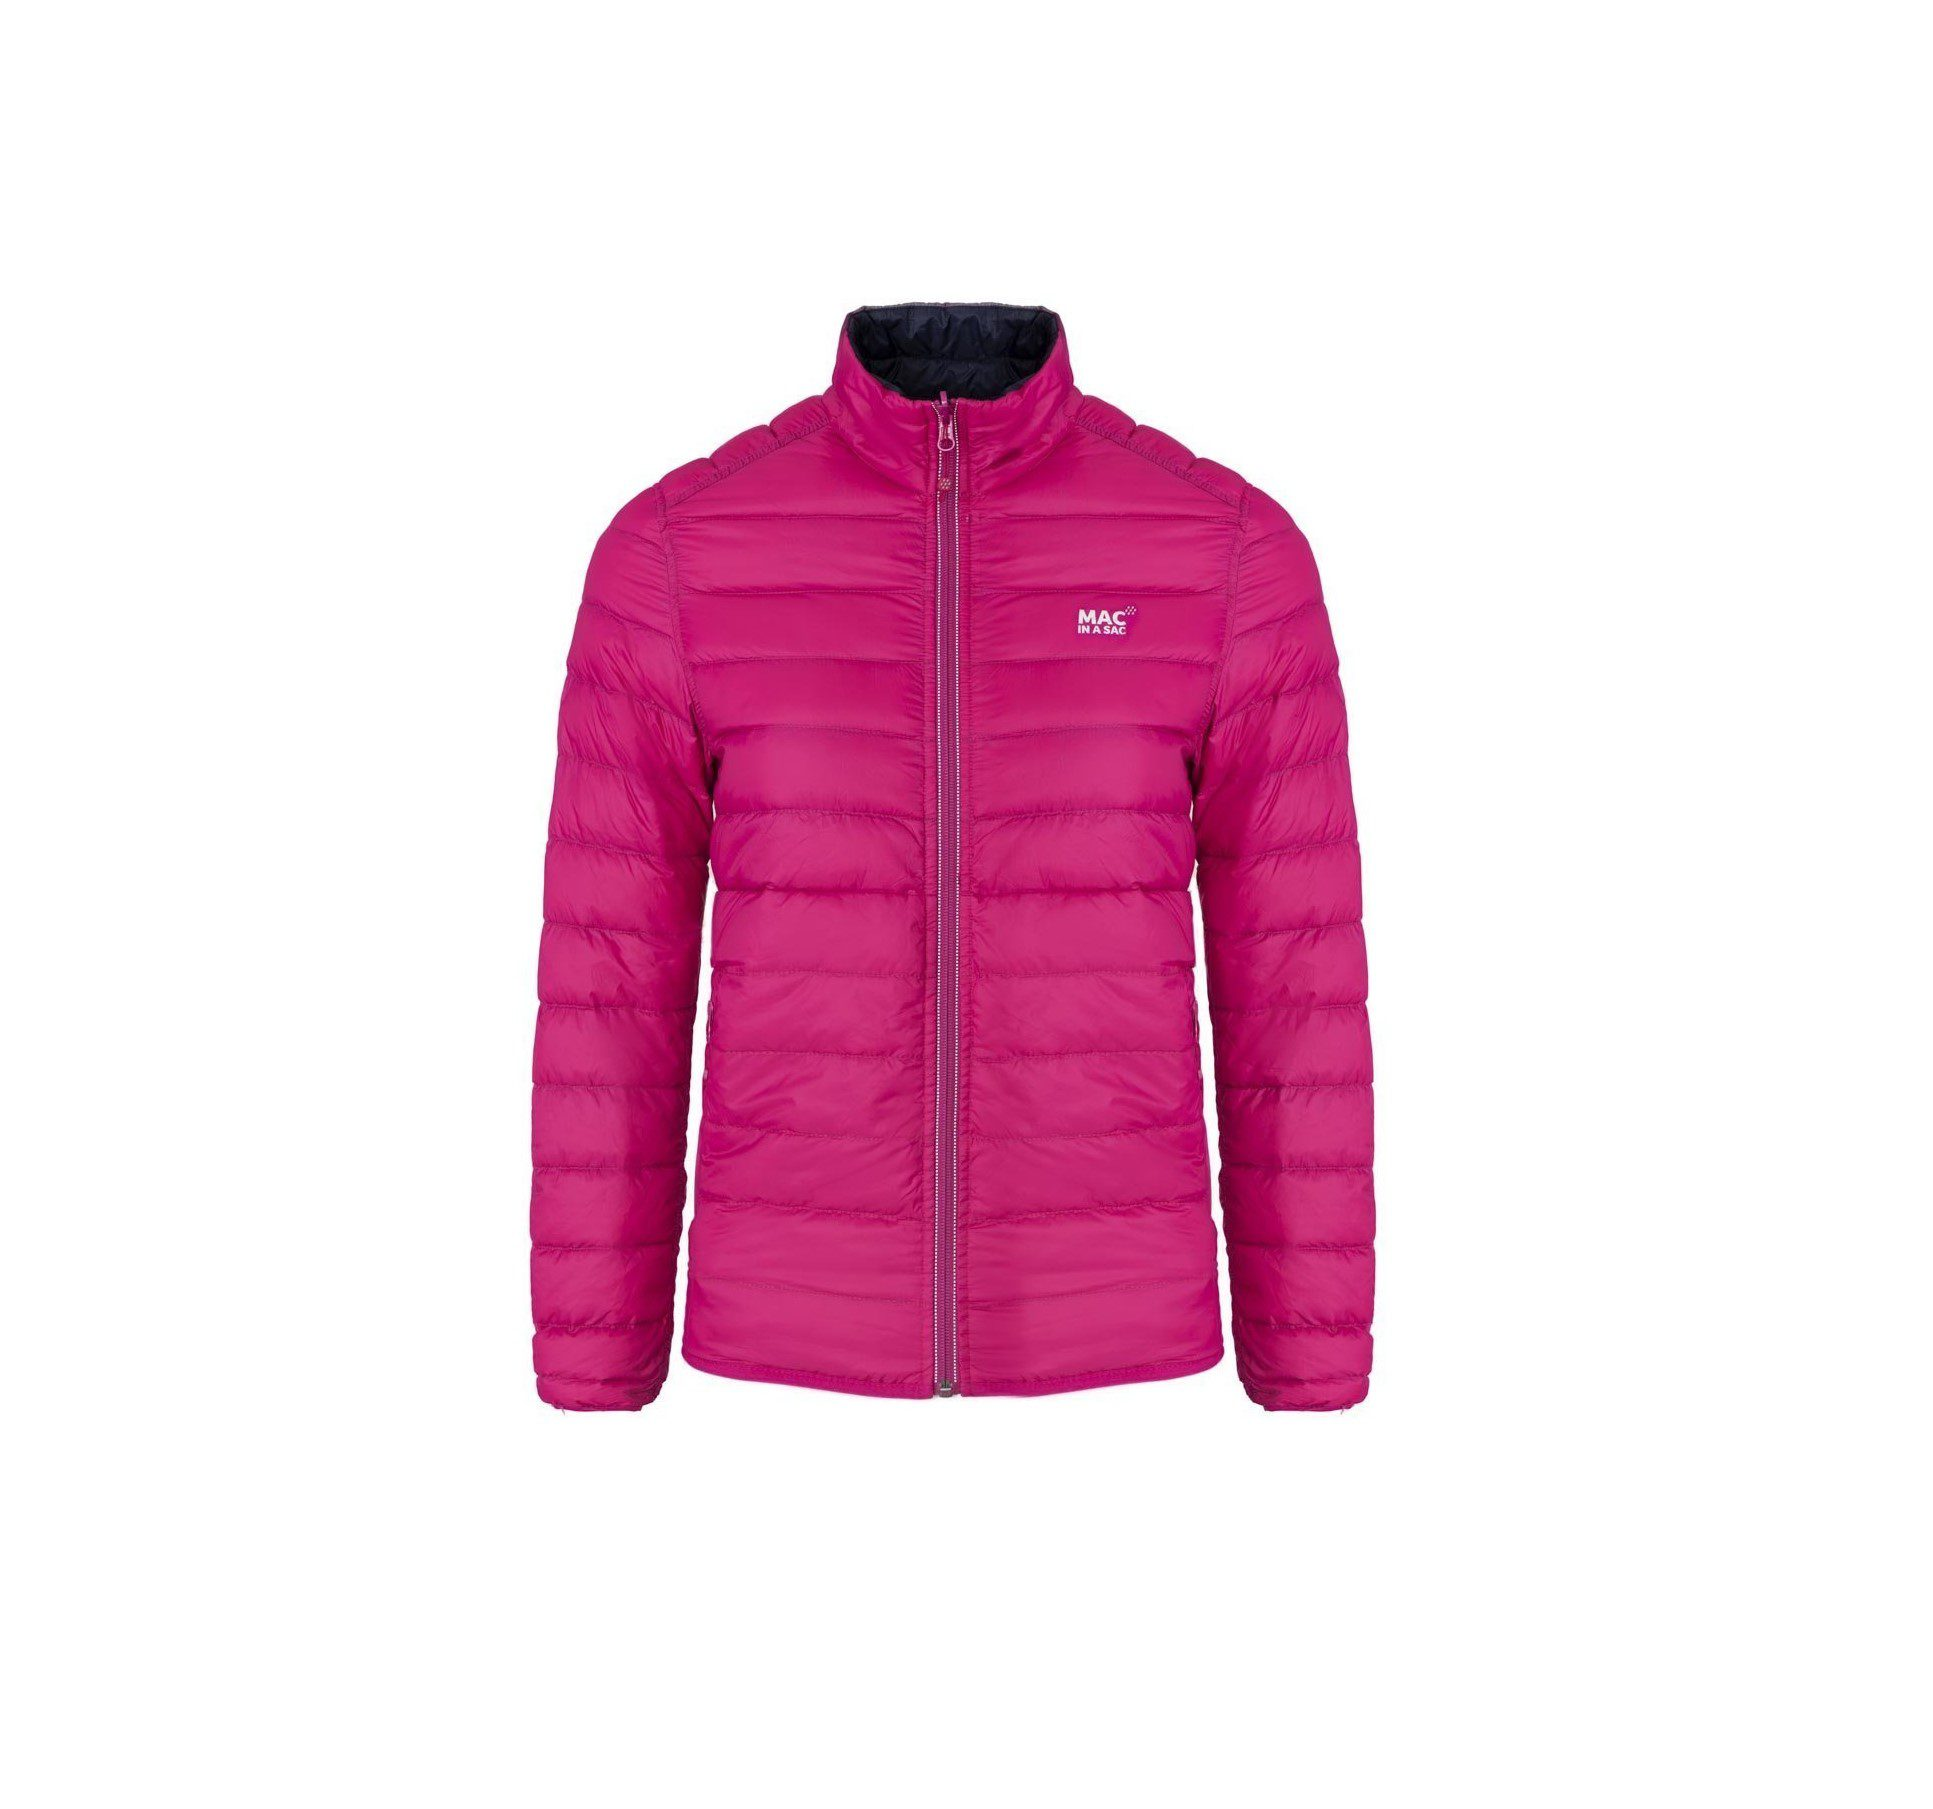 Target Dry Polar Down Jacket - Fuschia-Navy